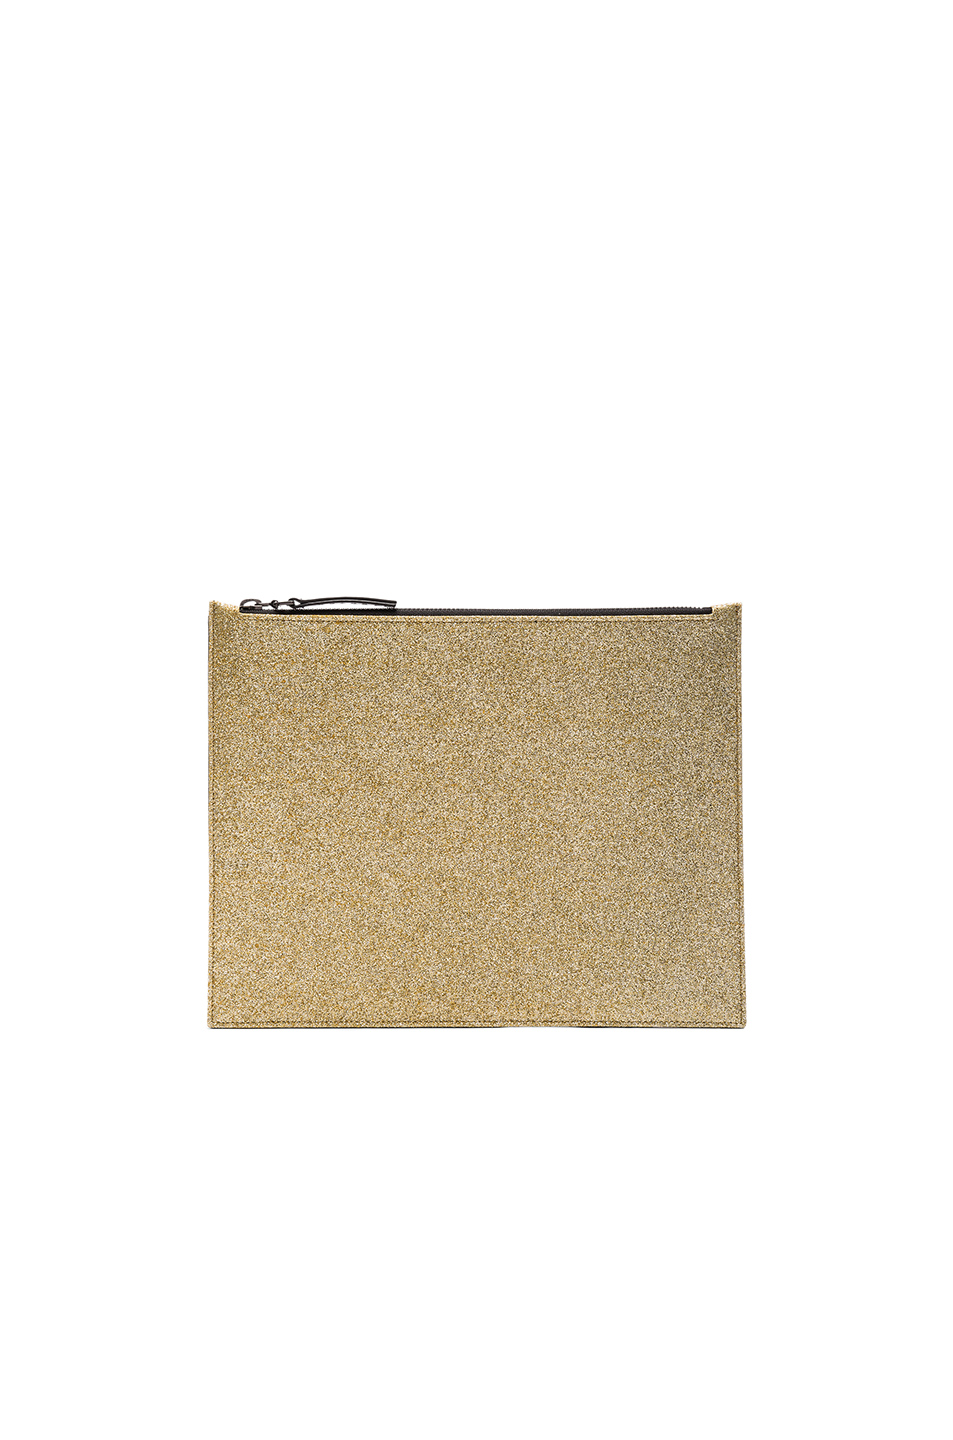 Maison Margiela Glitter & Calf Leather Pouch in Metallics